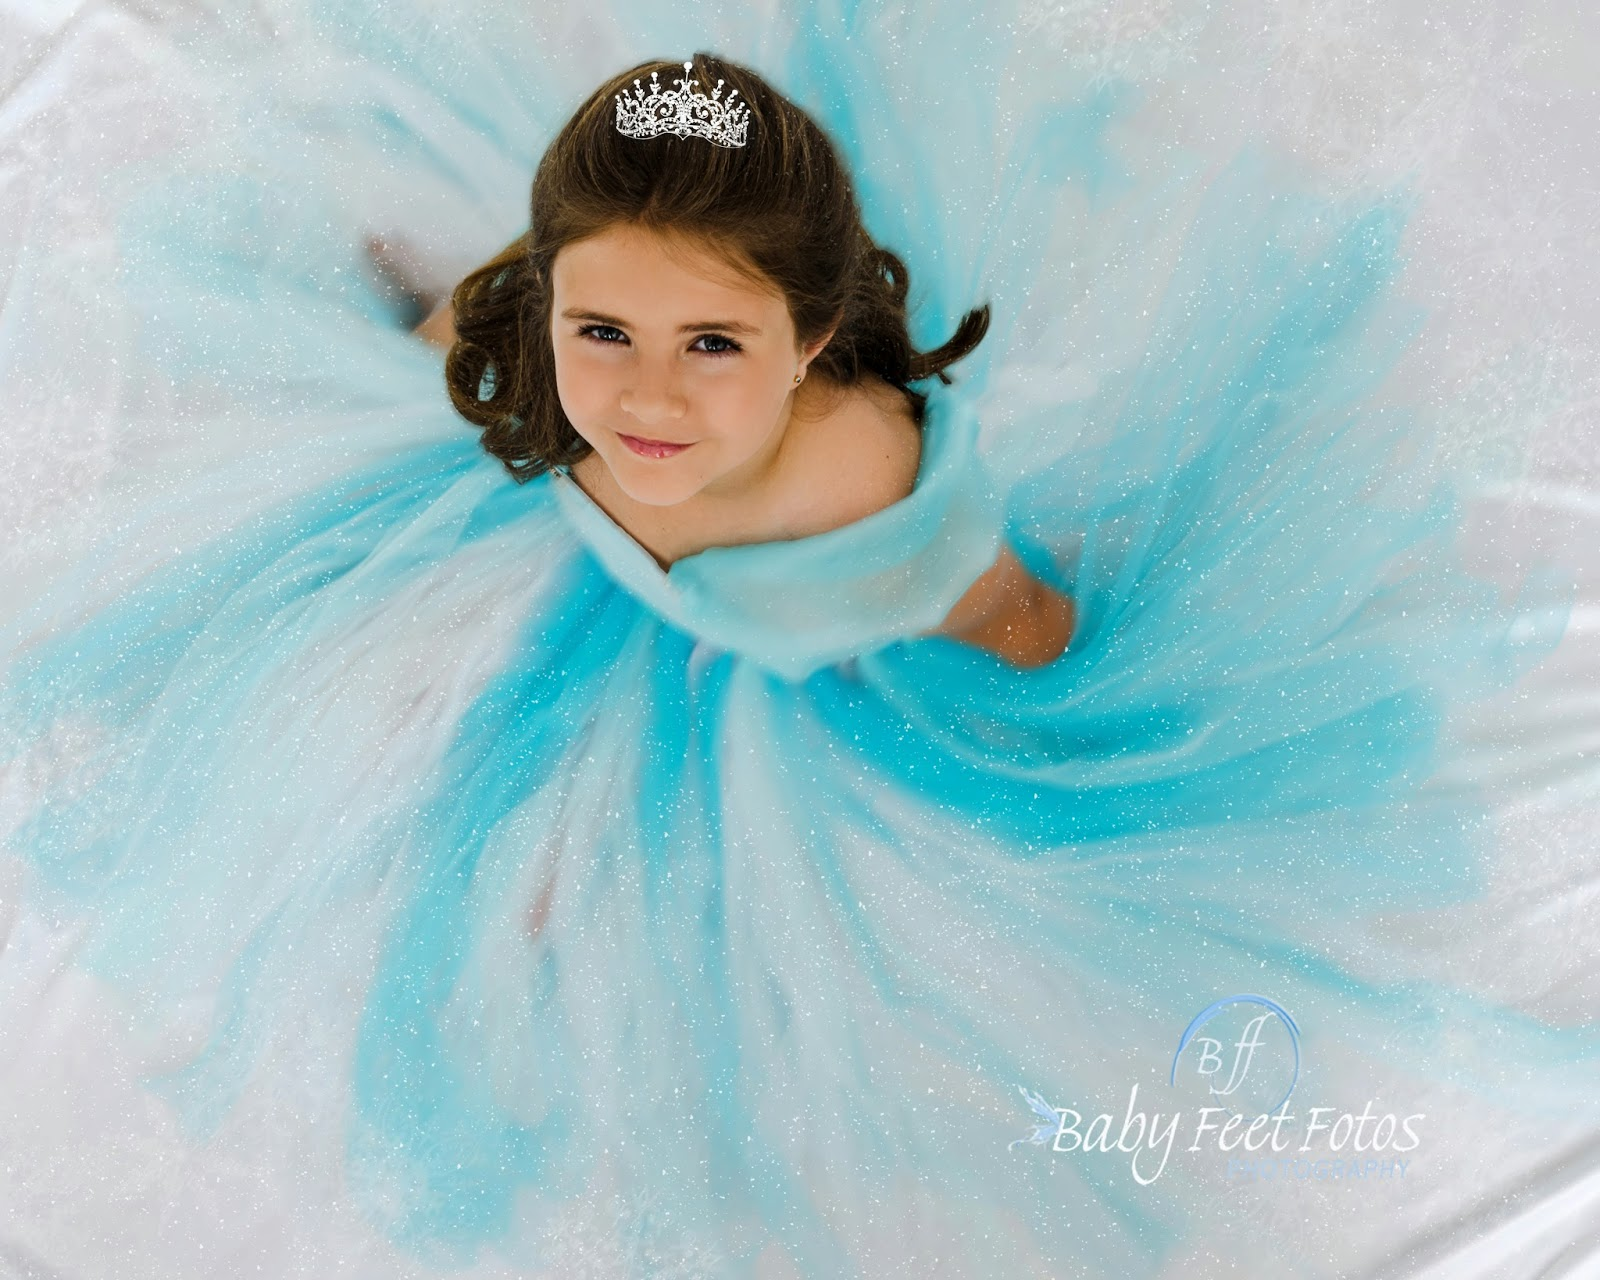 Baby feet fotos disney 39 s movie frozen inspired photos - Princesse frozen ...